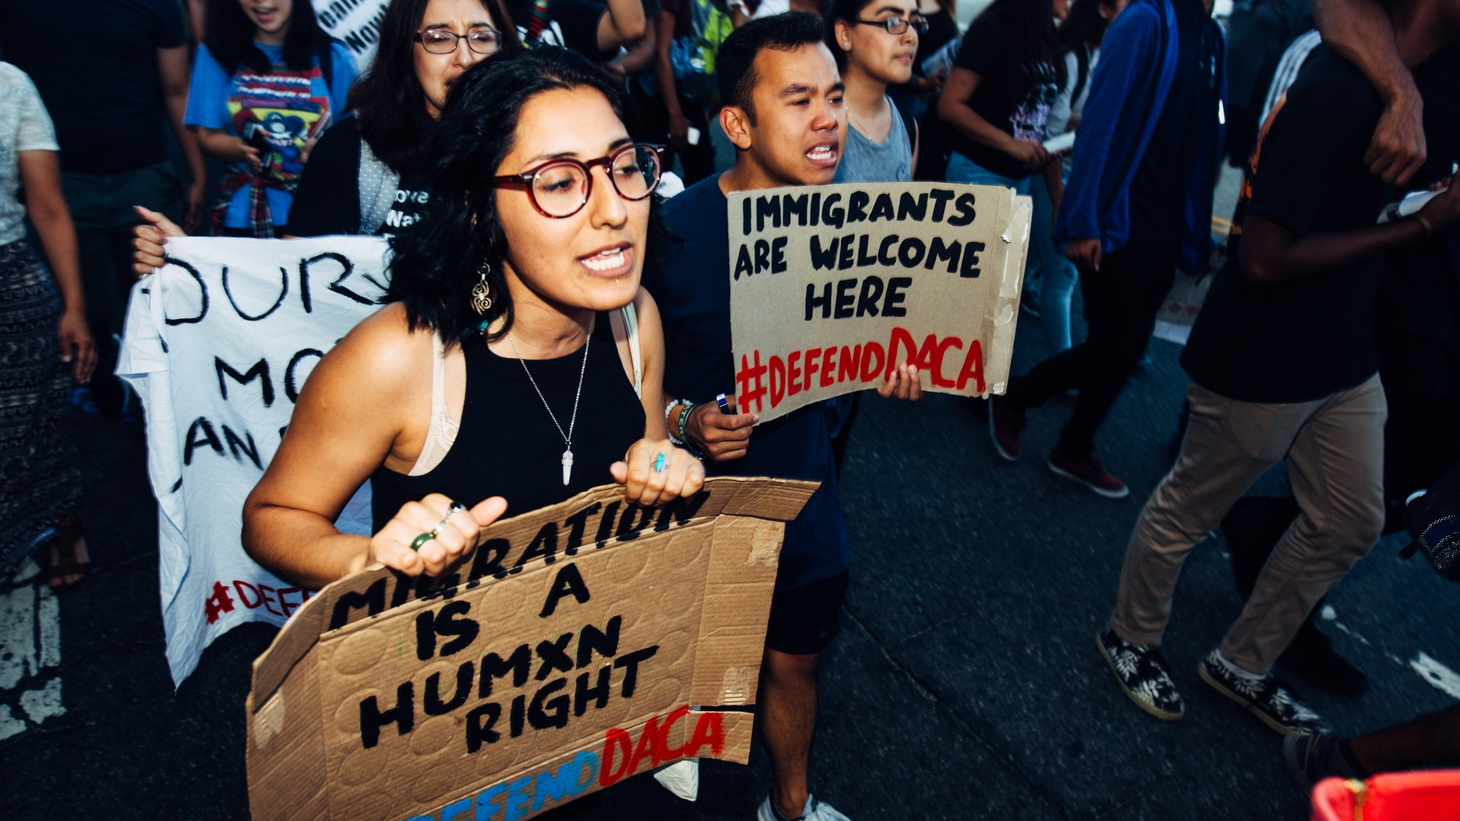 Activists in Los Angeles rallying to defend DACA.